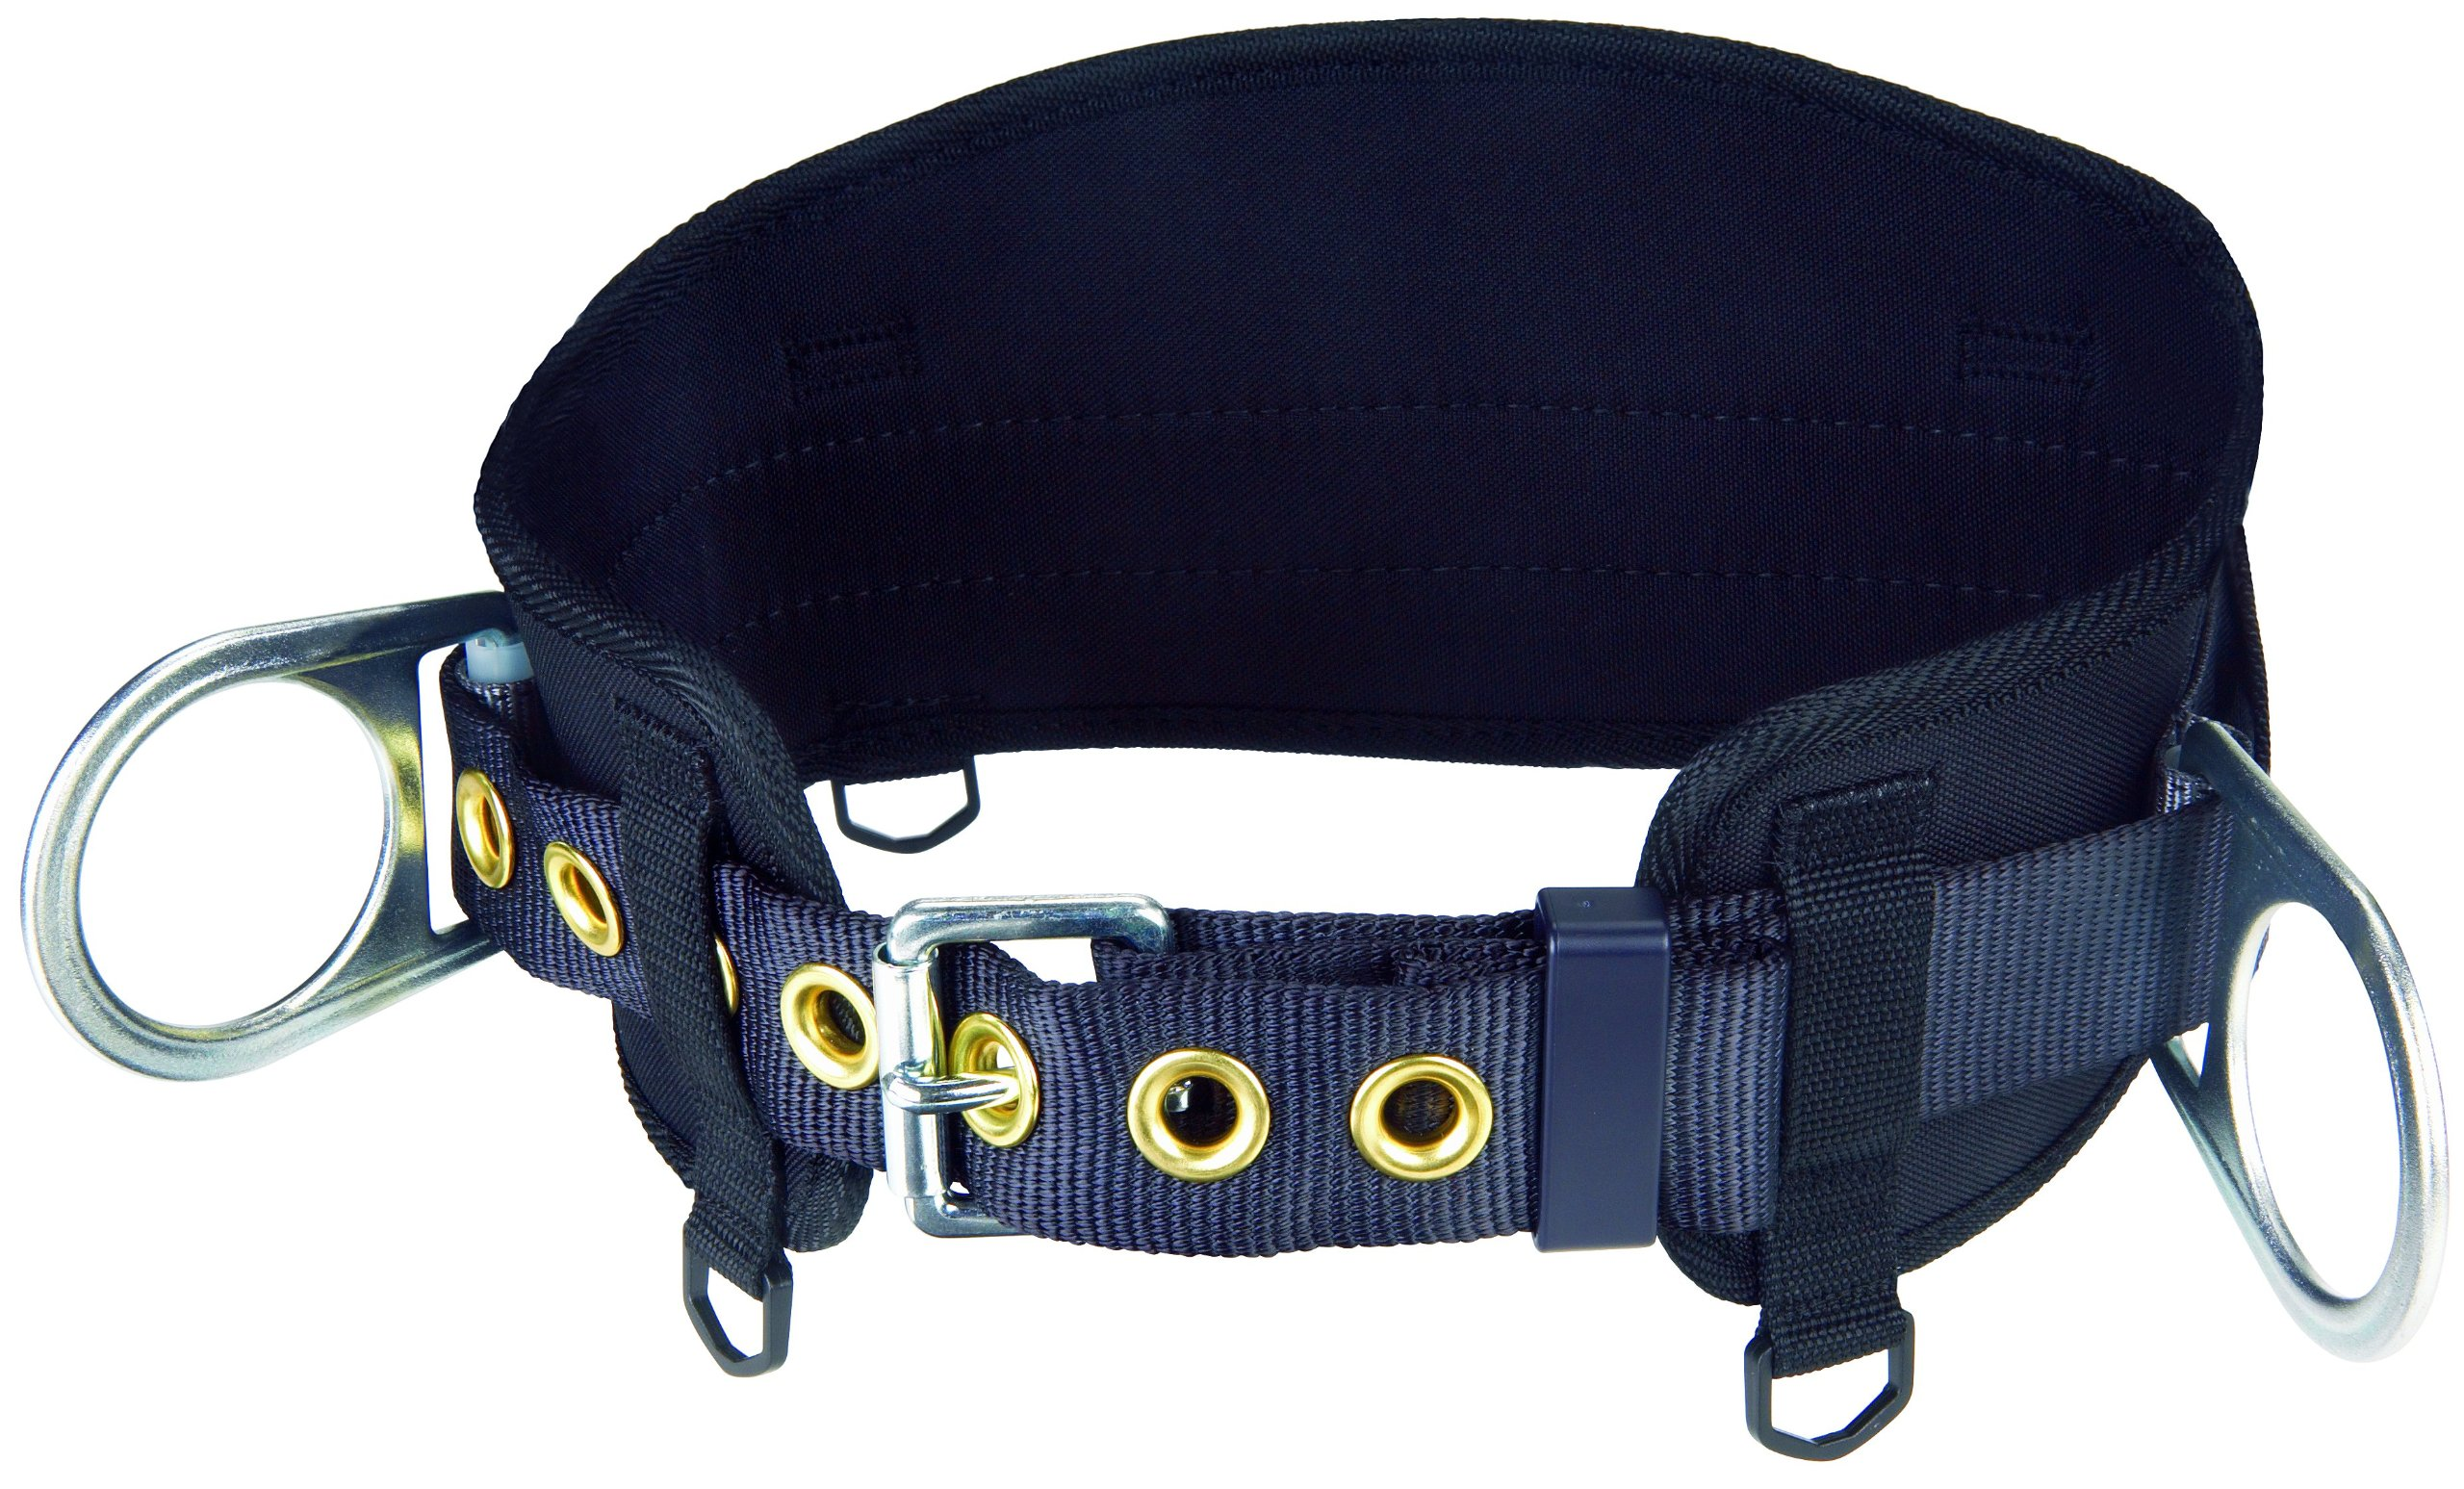 3M Protecta PRO 1091015 Body Belt with Hip Pad, 2 D-Rings, X-Large, Black by 3M Personal Protective Equipment